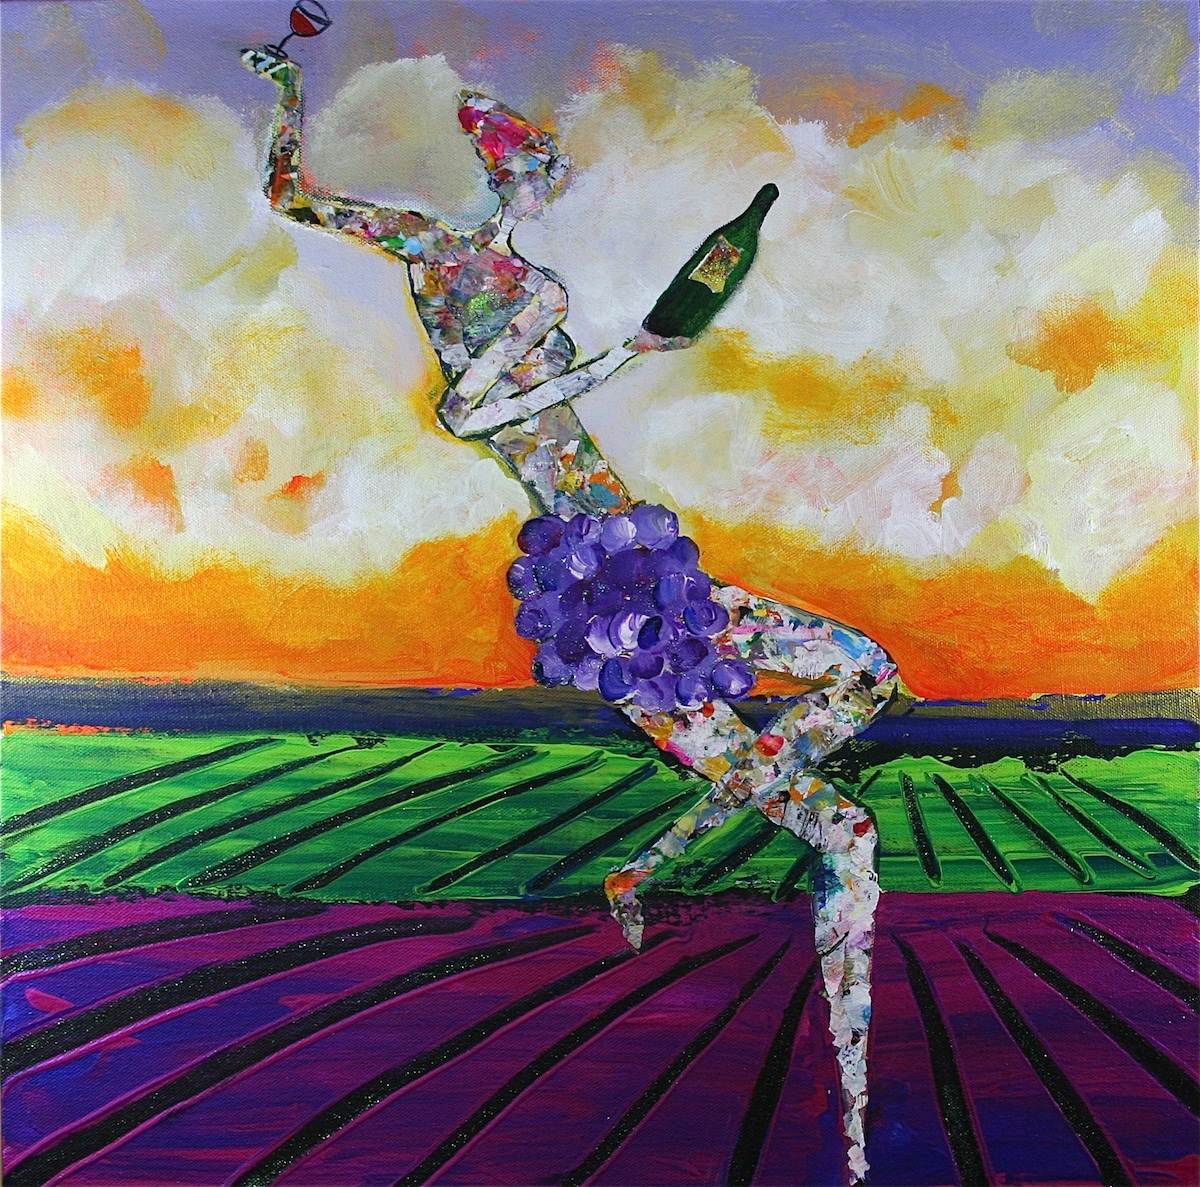 Goddess of Wine in the Vineyard - Painting by Stephanie Schlatter